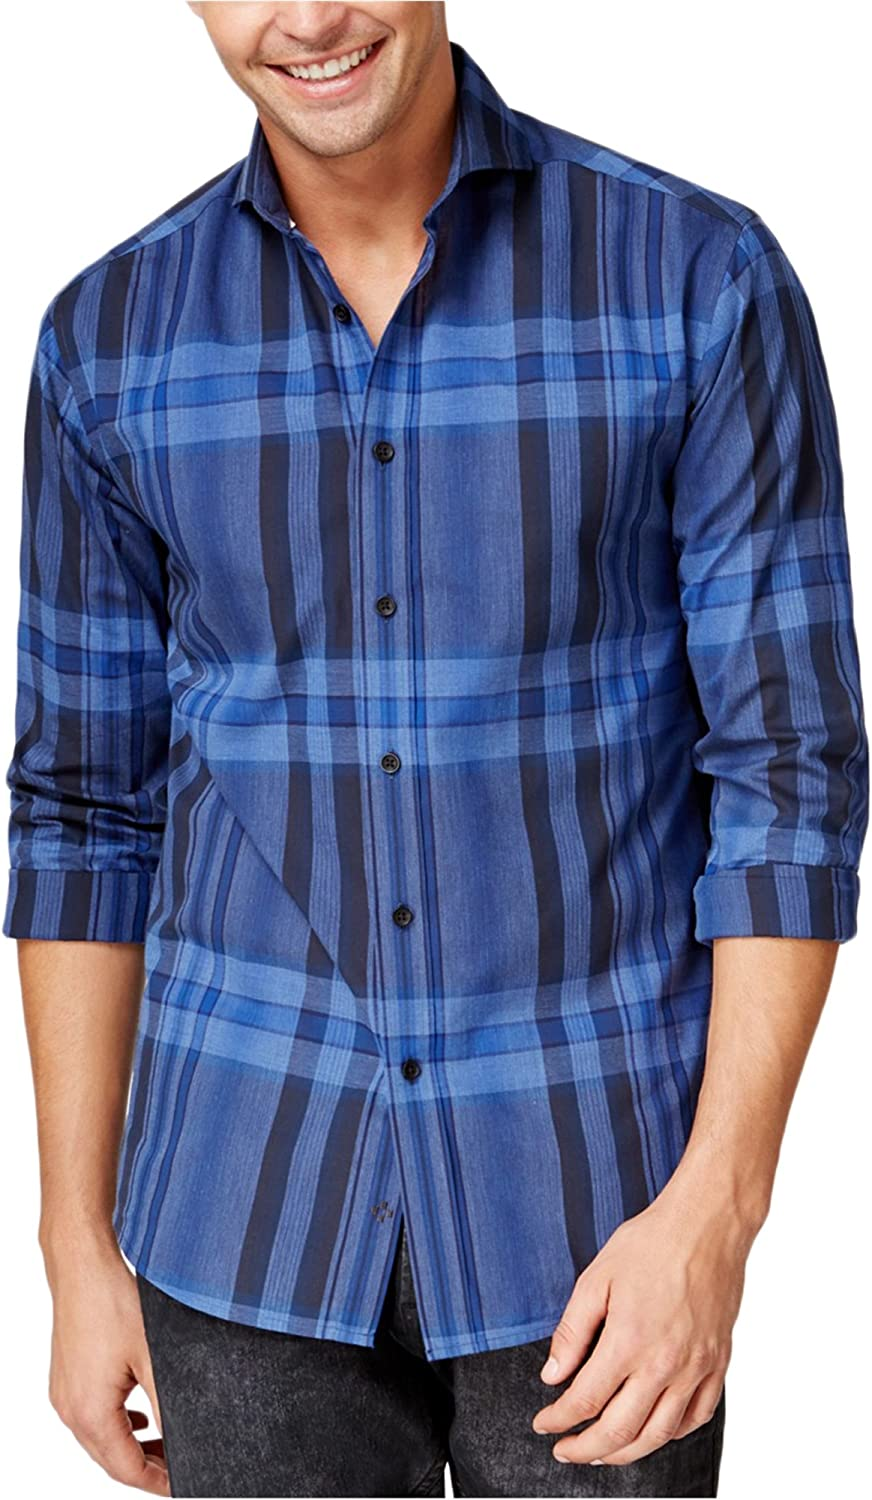 Vince Camuto Men's Patterned Long-Sleeve Button-Front Shirt